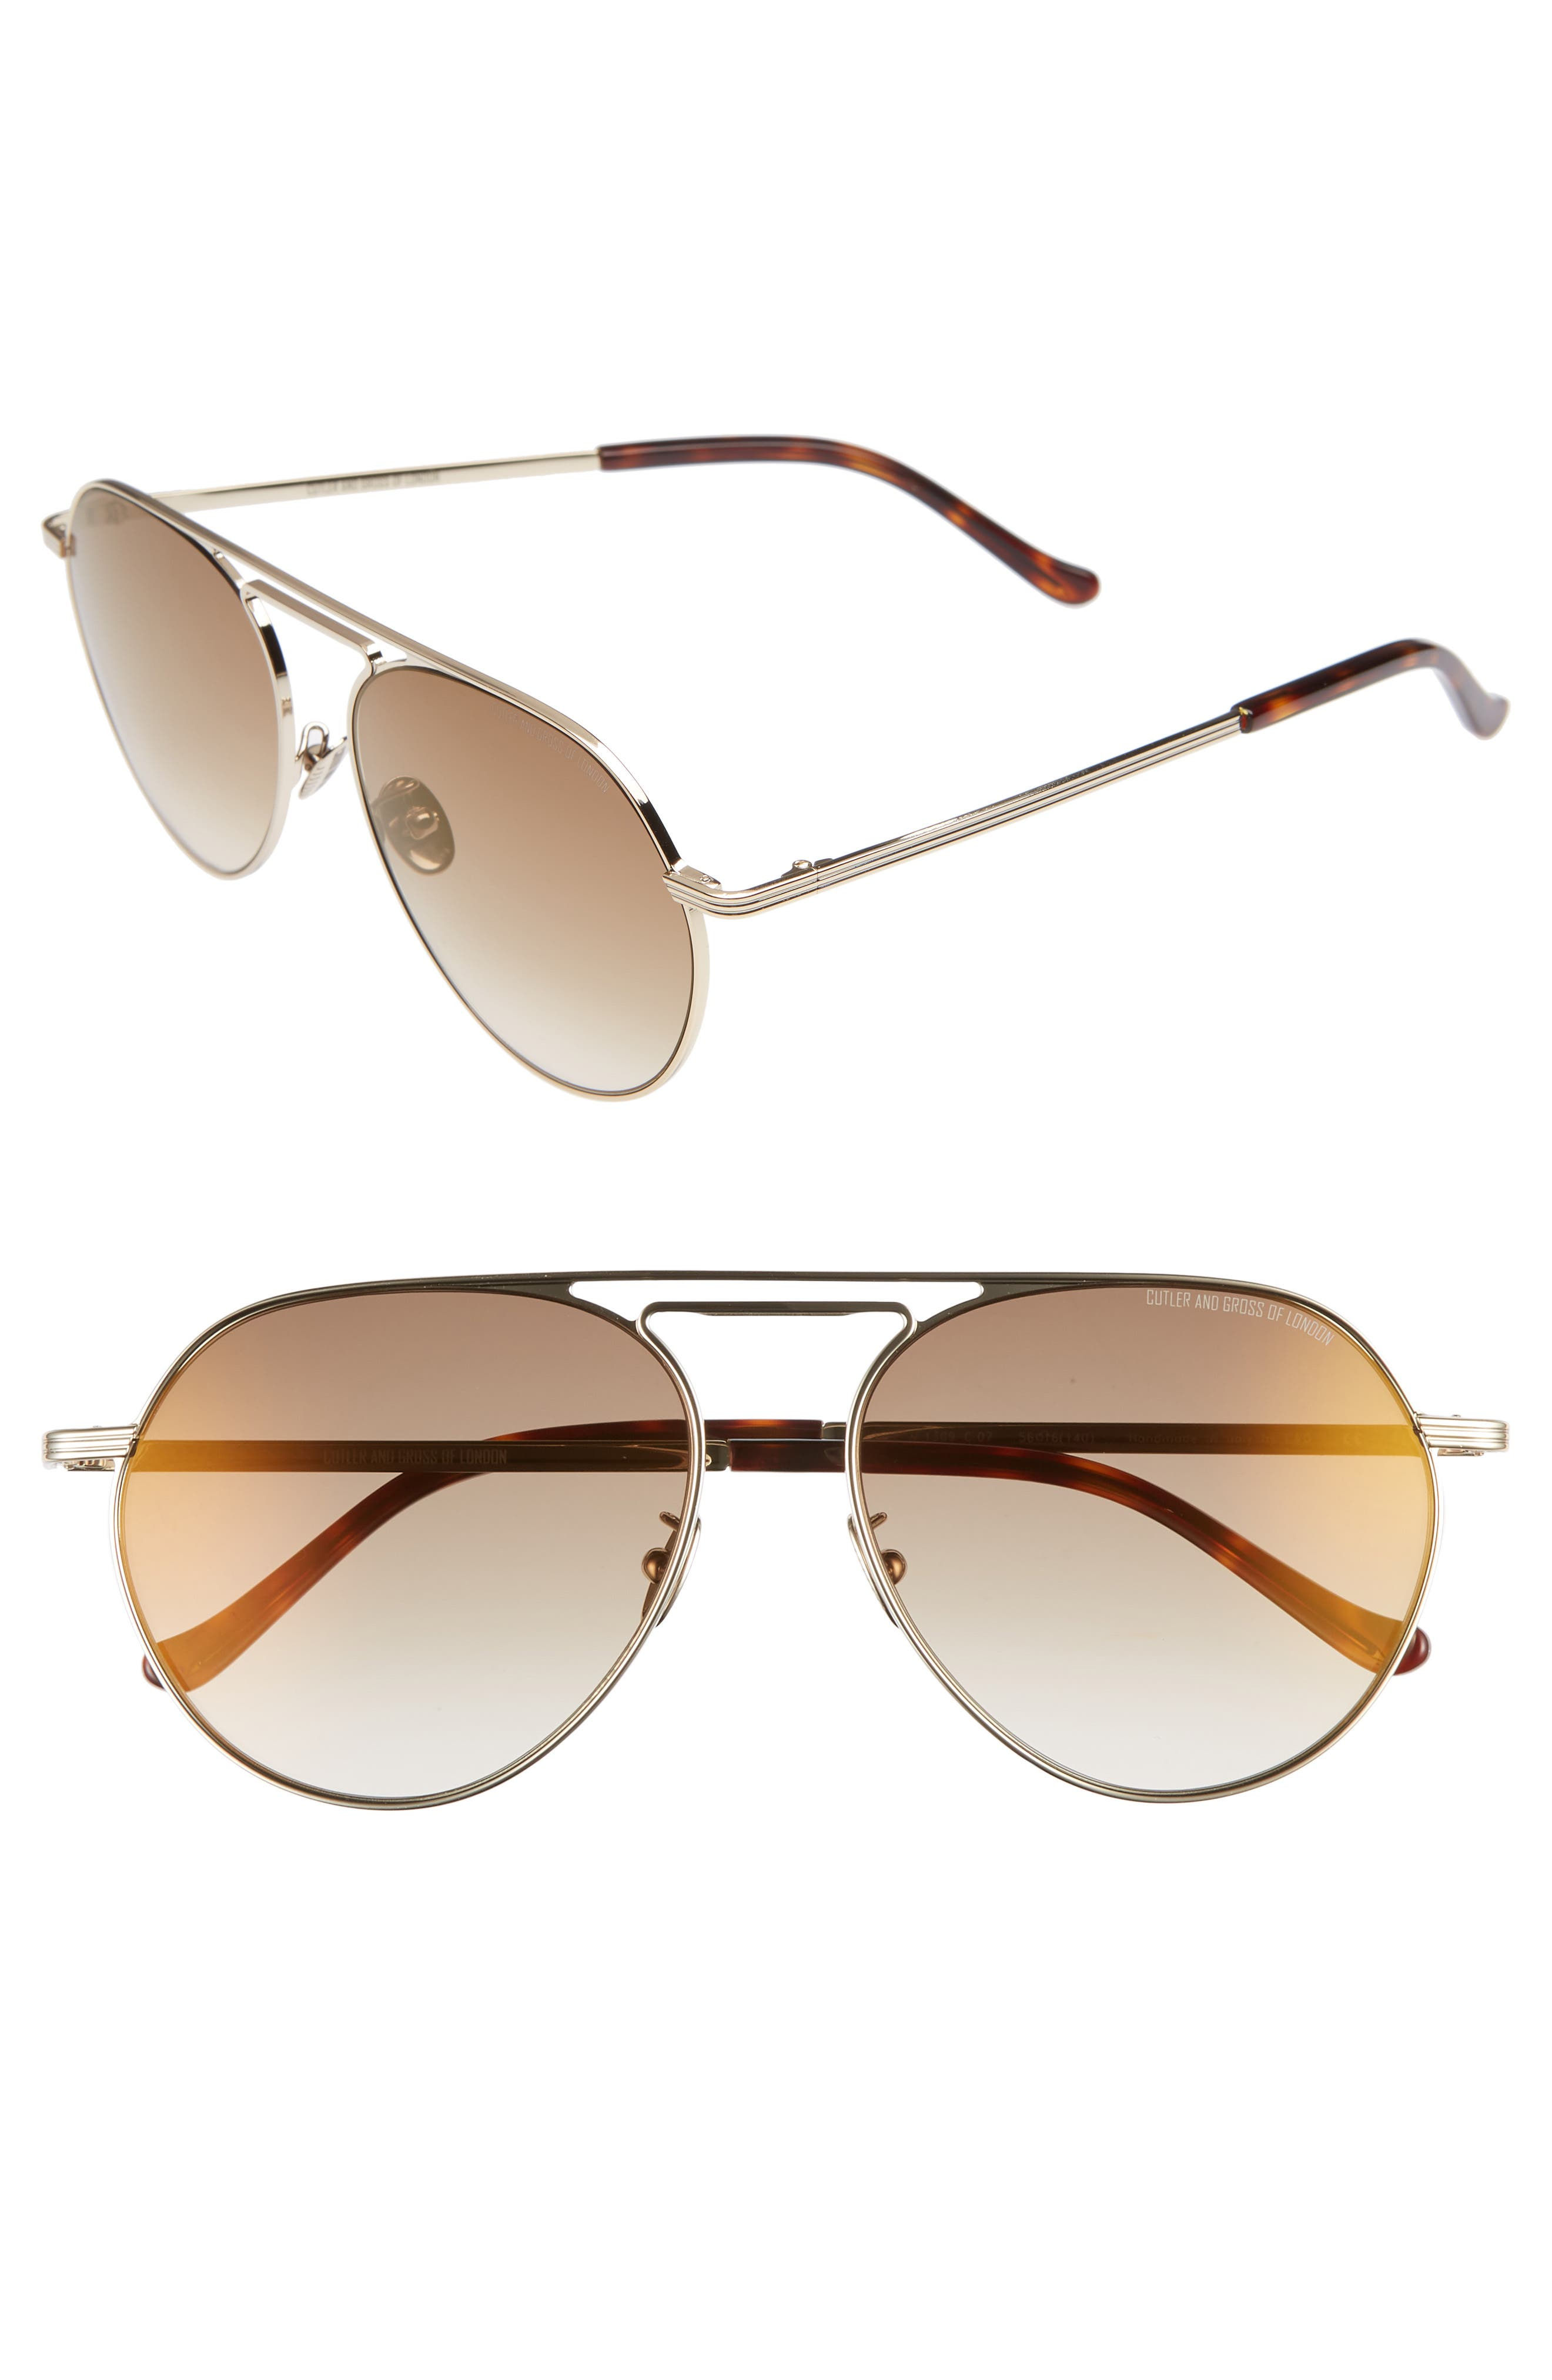 56mm Polarized Aviator Sunglasses,                         Main,                         color, BROWN GOLD/ BROWN